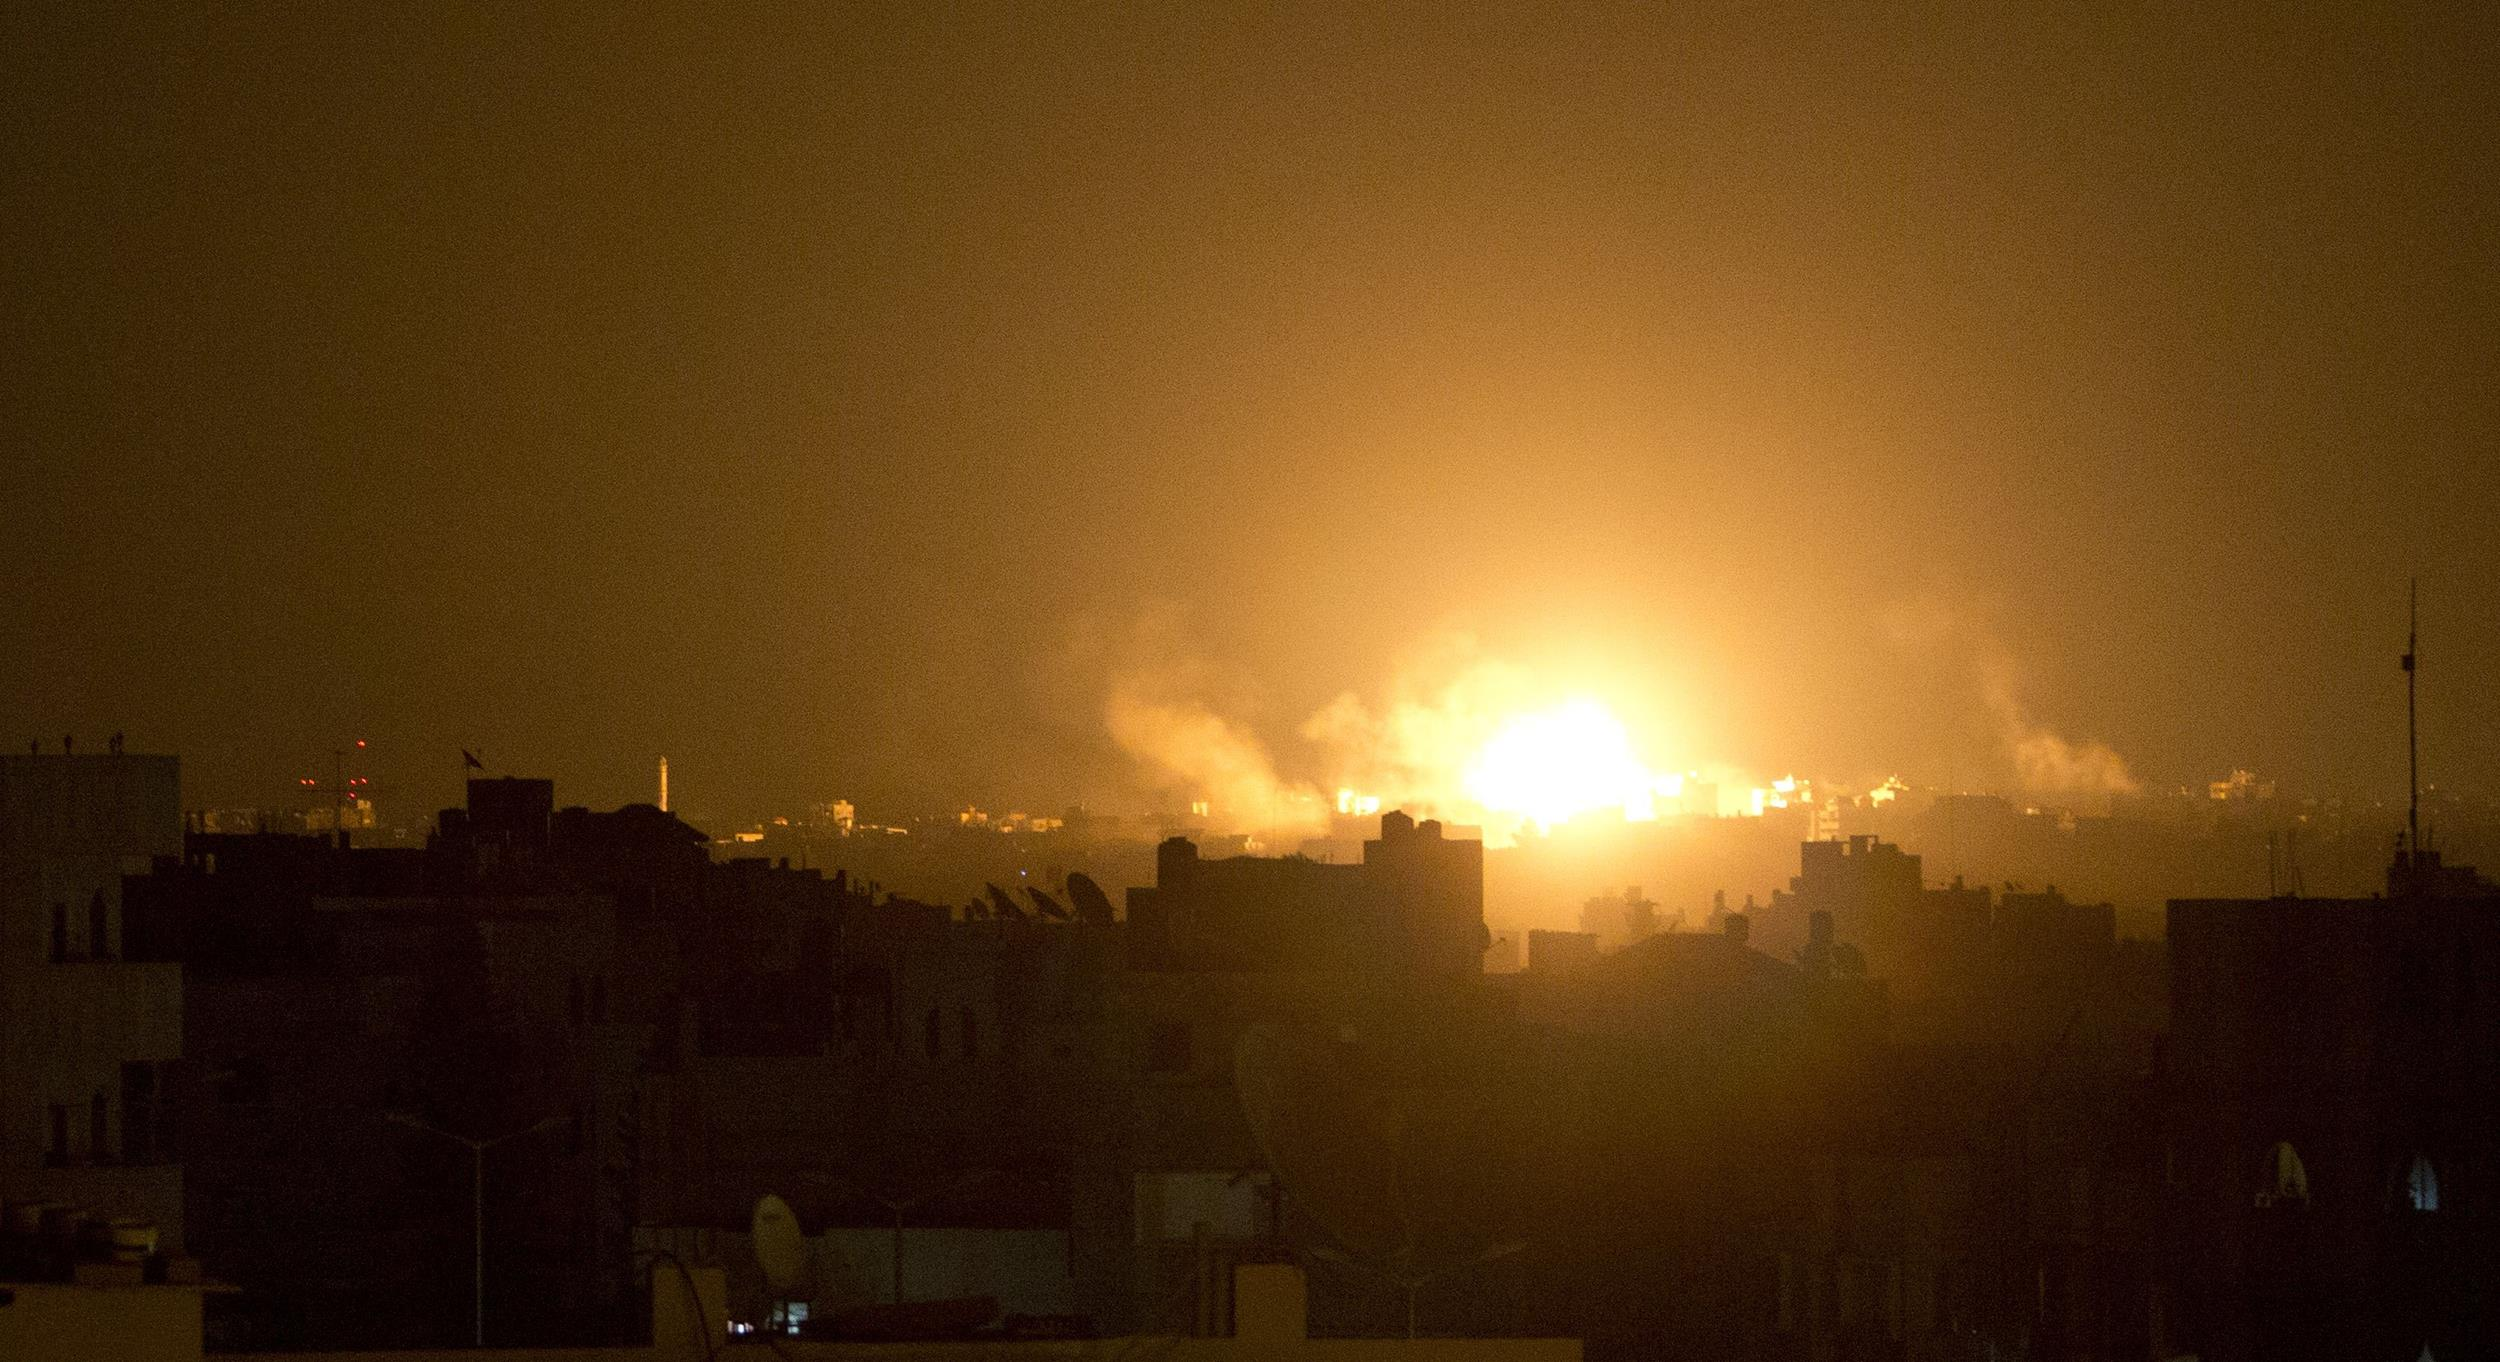 Image: A ball of fire explodes during an Israeli shelling in the eastern part of Gaza City